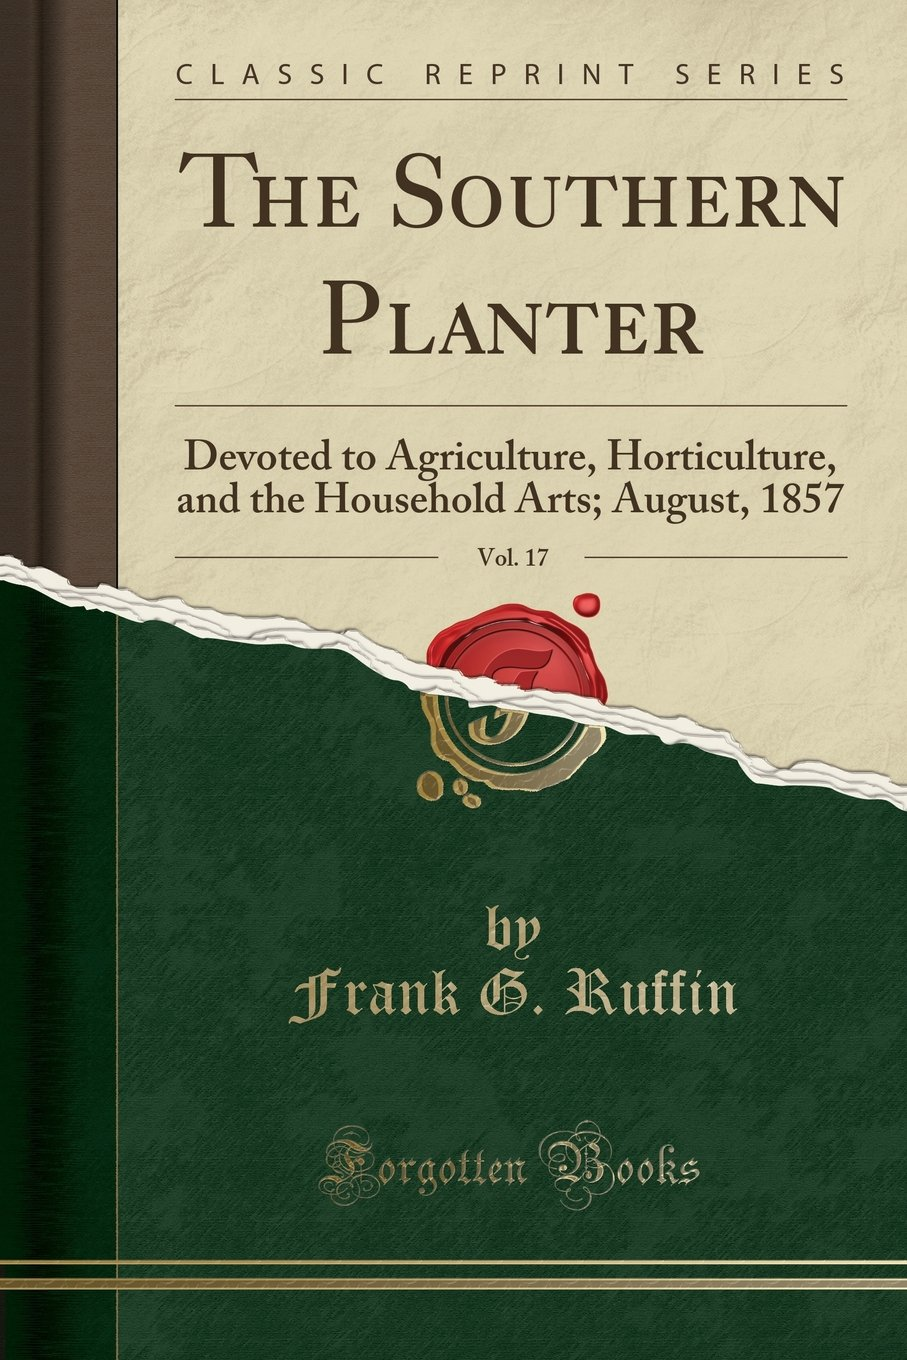 Download The Southern Planter, Vol. 17: Devoted to Agriculture, Horticulture, and the Household Arts; August, 1857 (Classic Reprint) PDF